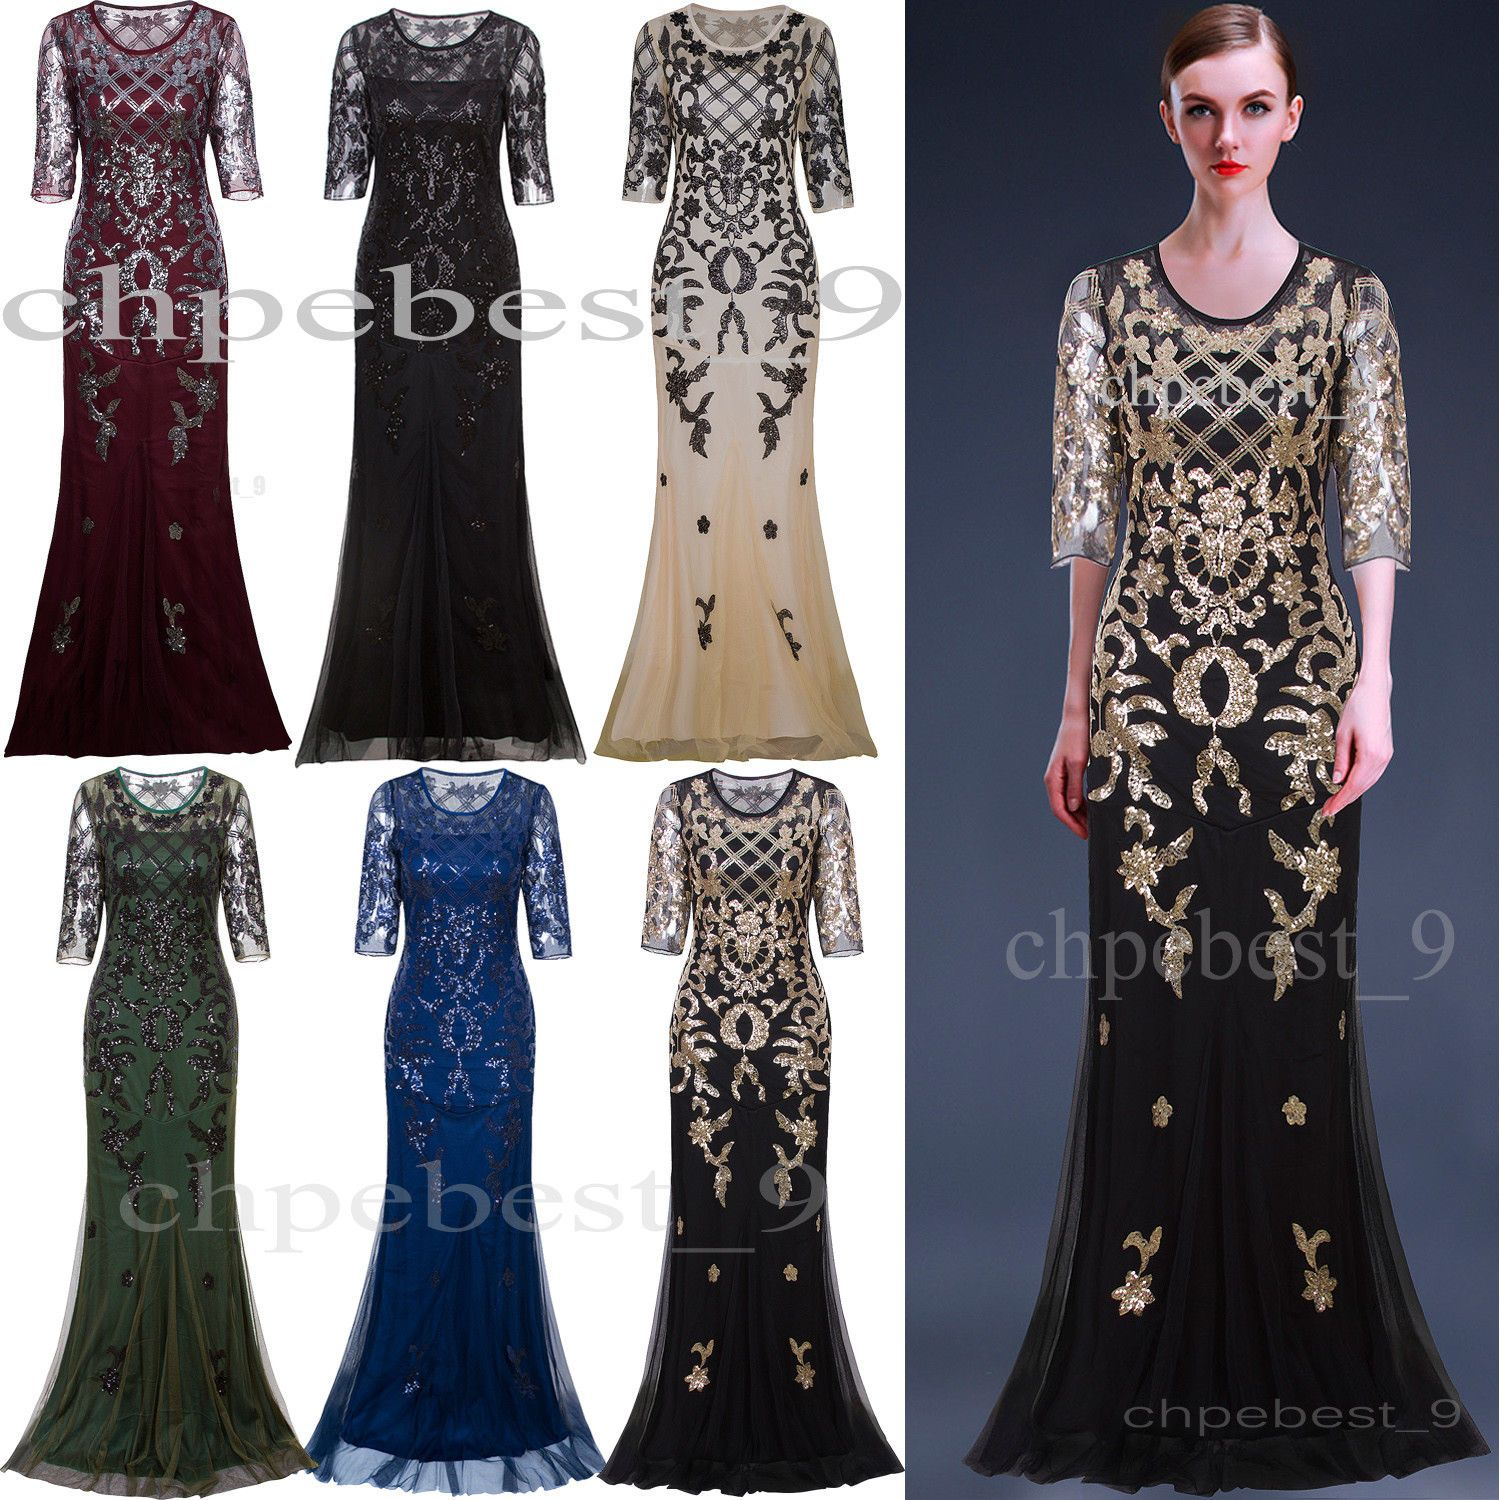 Awesome amazing s gatsby dress long wedding prom dresses